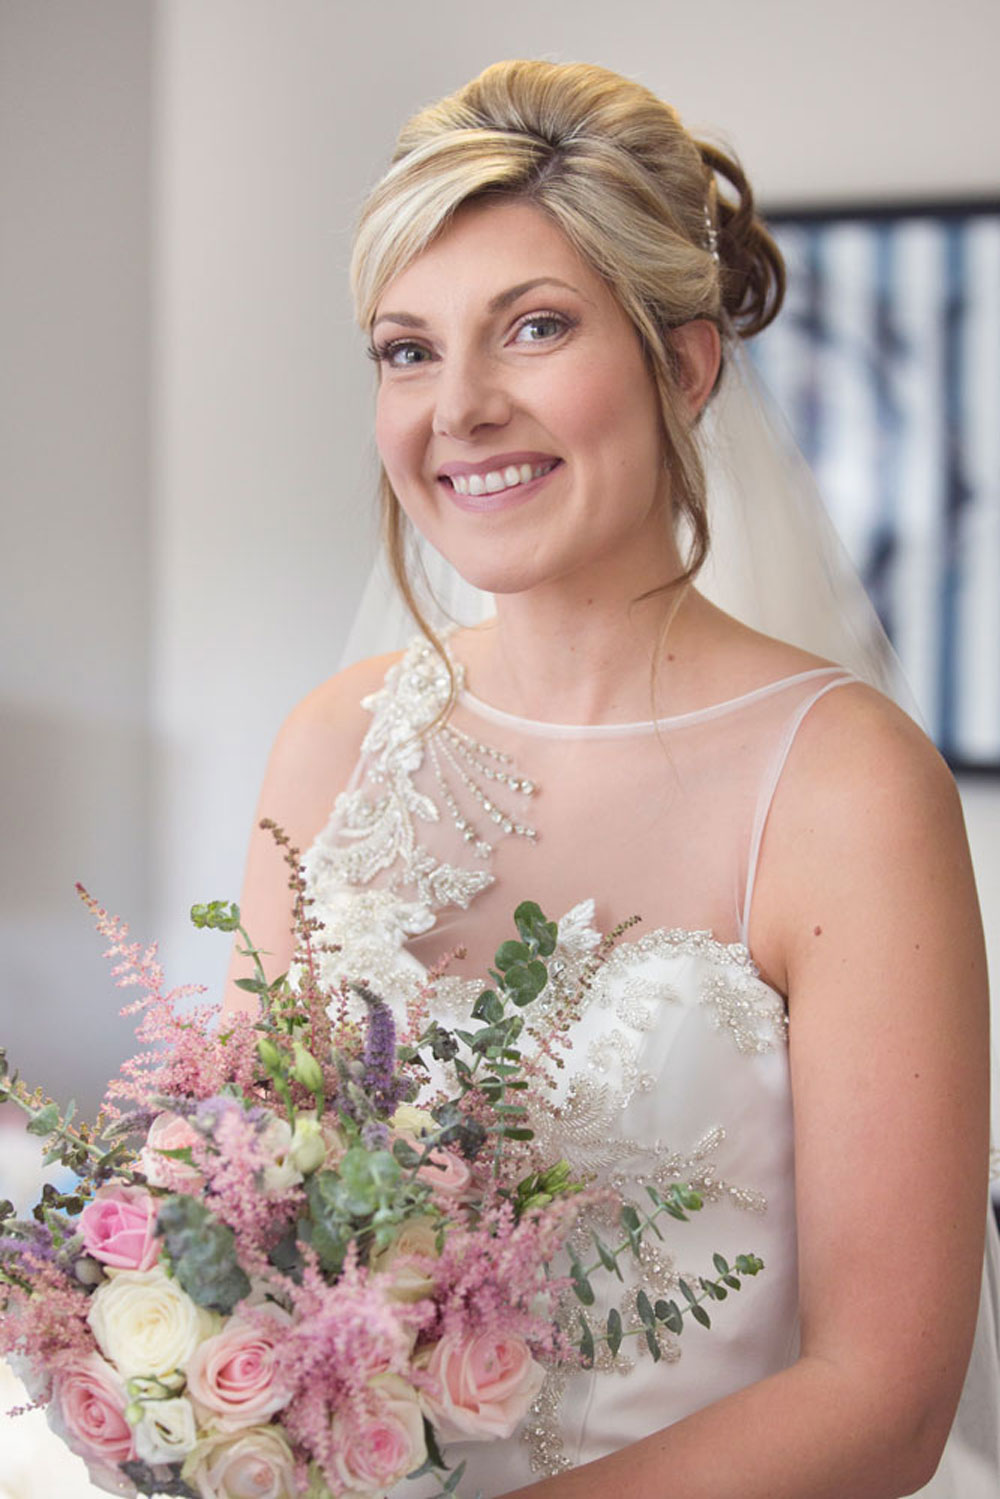 Ardoe House Hotel wedding, bride is holding the flowers, Anna Wytrazek Photography, wedding photographer Aberdeen